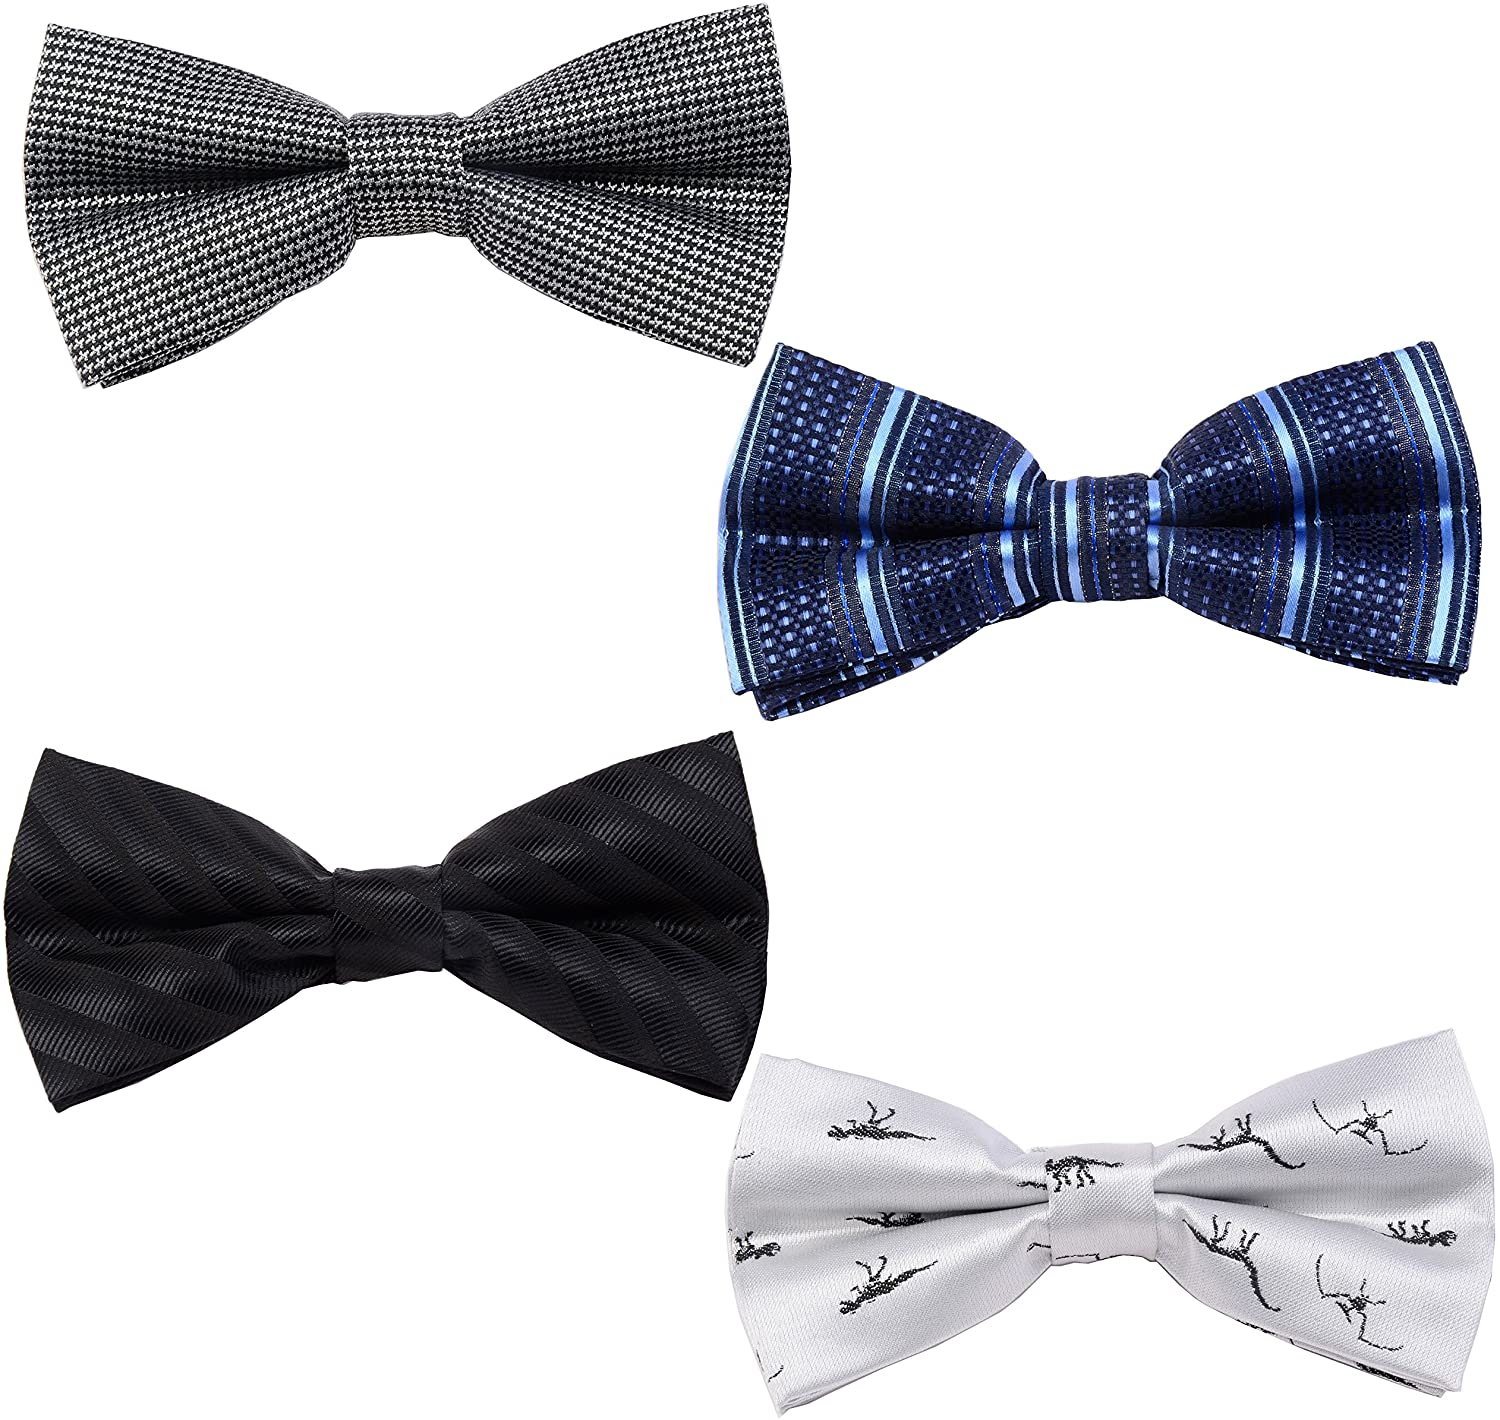 GUSLESON Men's Bow Ties 4 Packs Adjustable Pre-tied bowties for Man